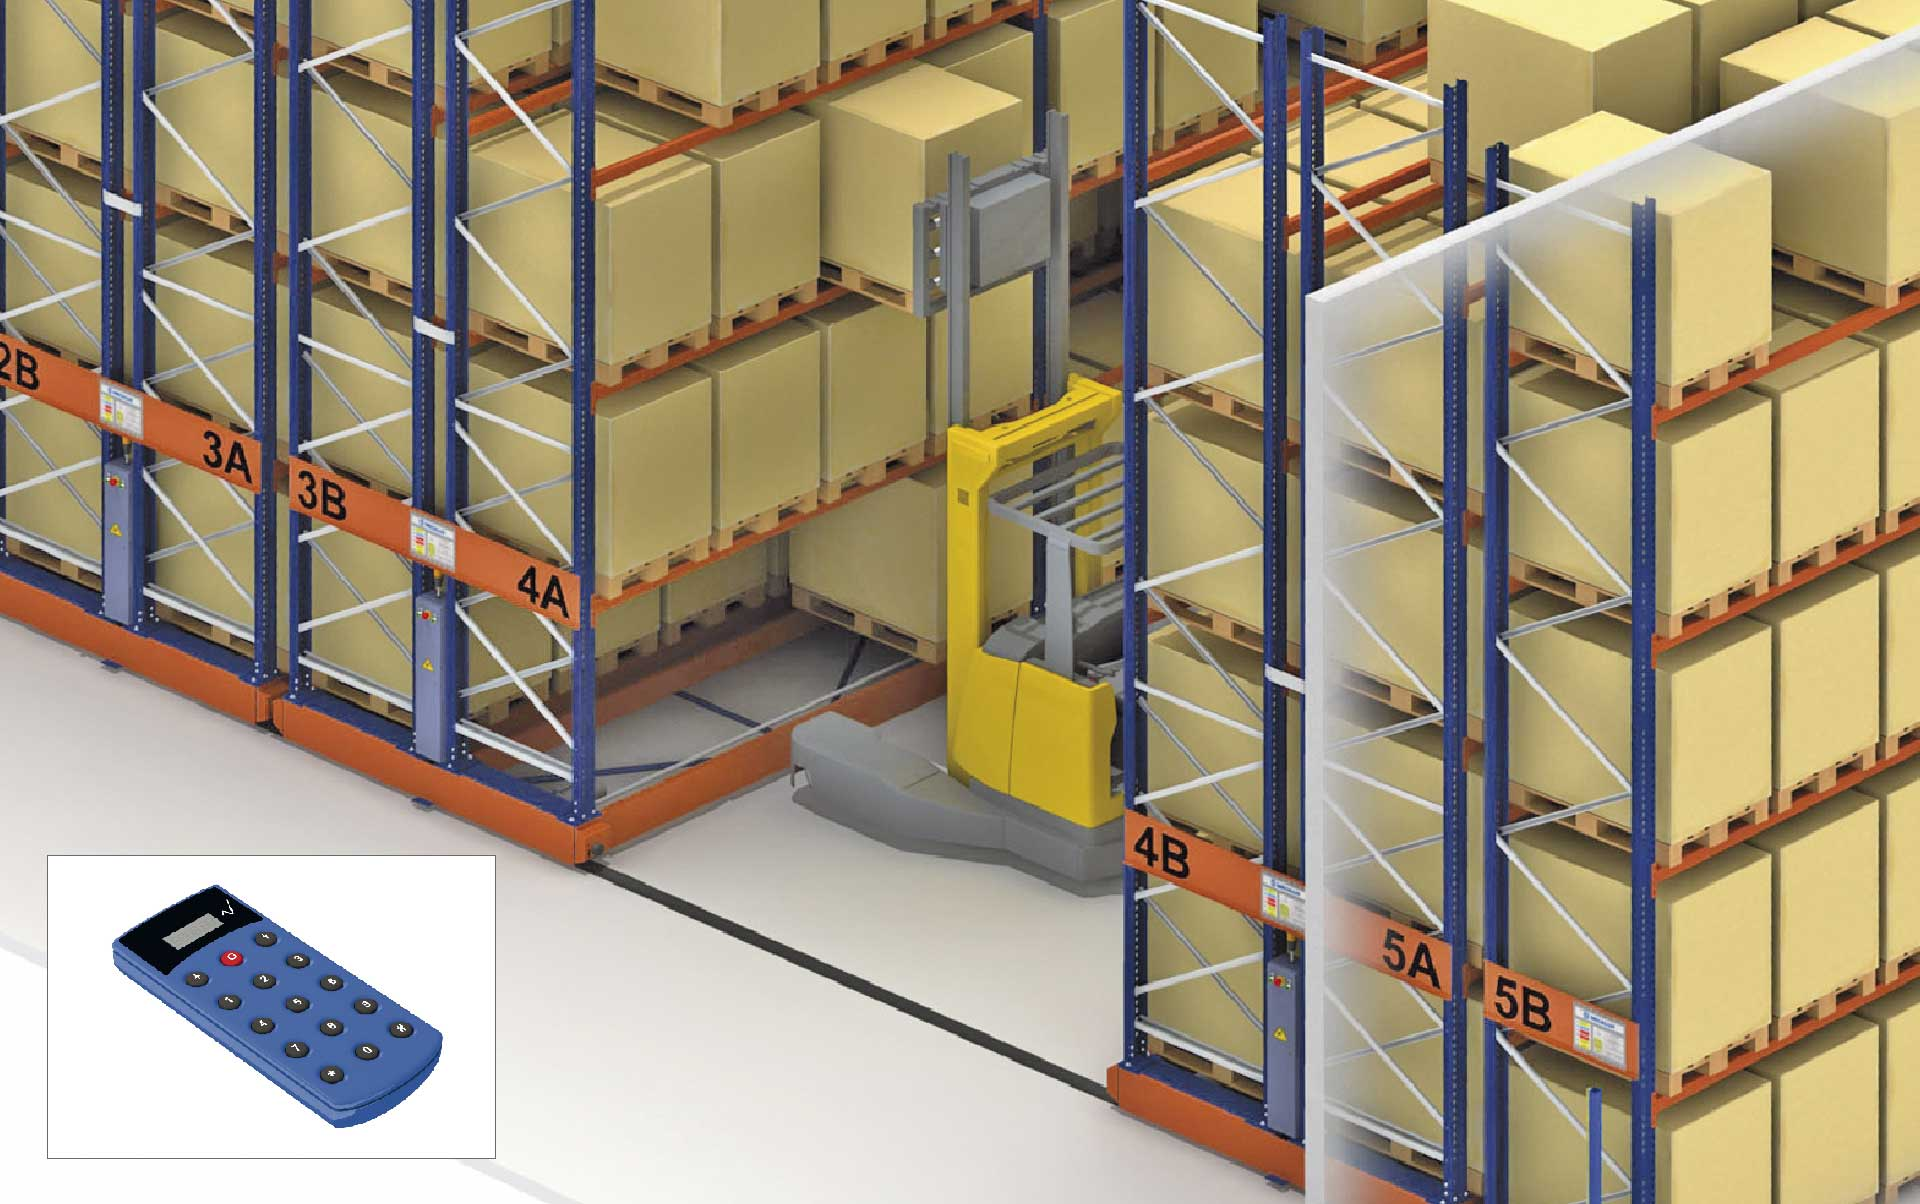 Movirack mobile racking will maximise the warehouse surface area